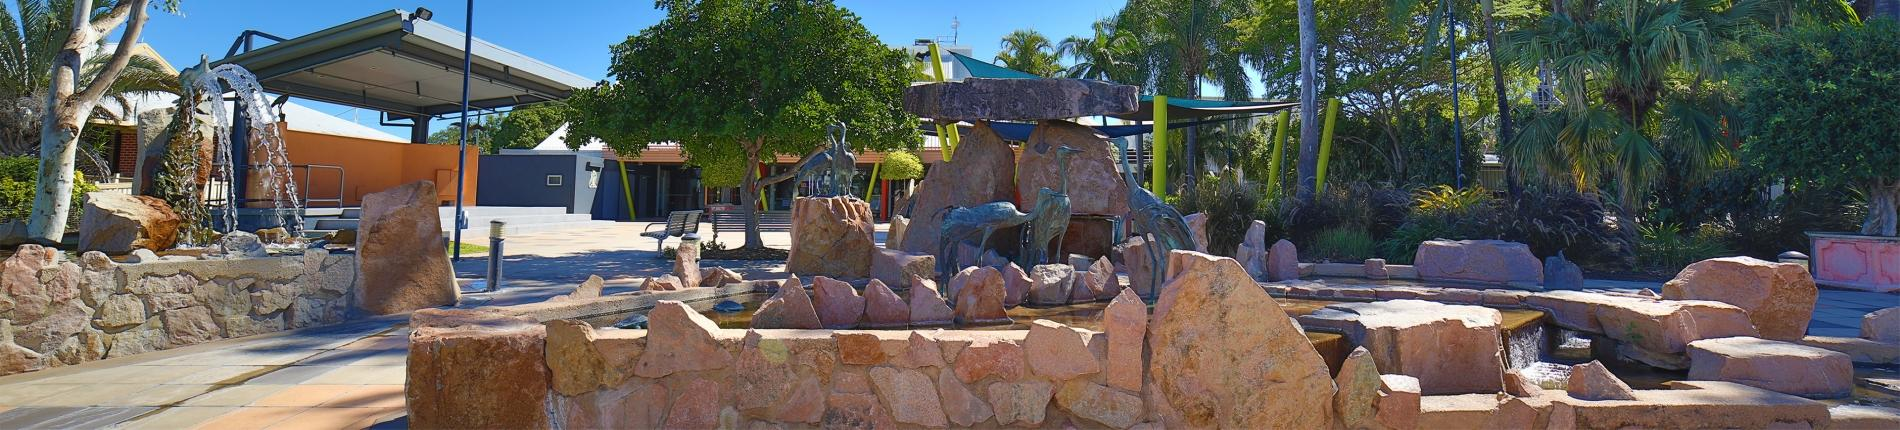 "Burdekin Theatre ""Living Lagoon"" Water Feature"